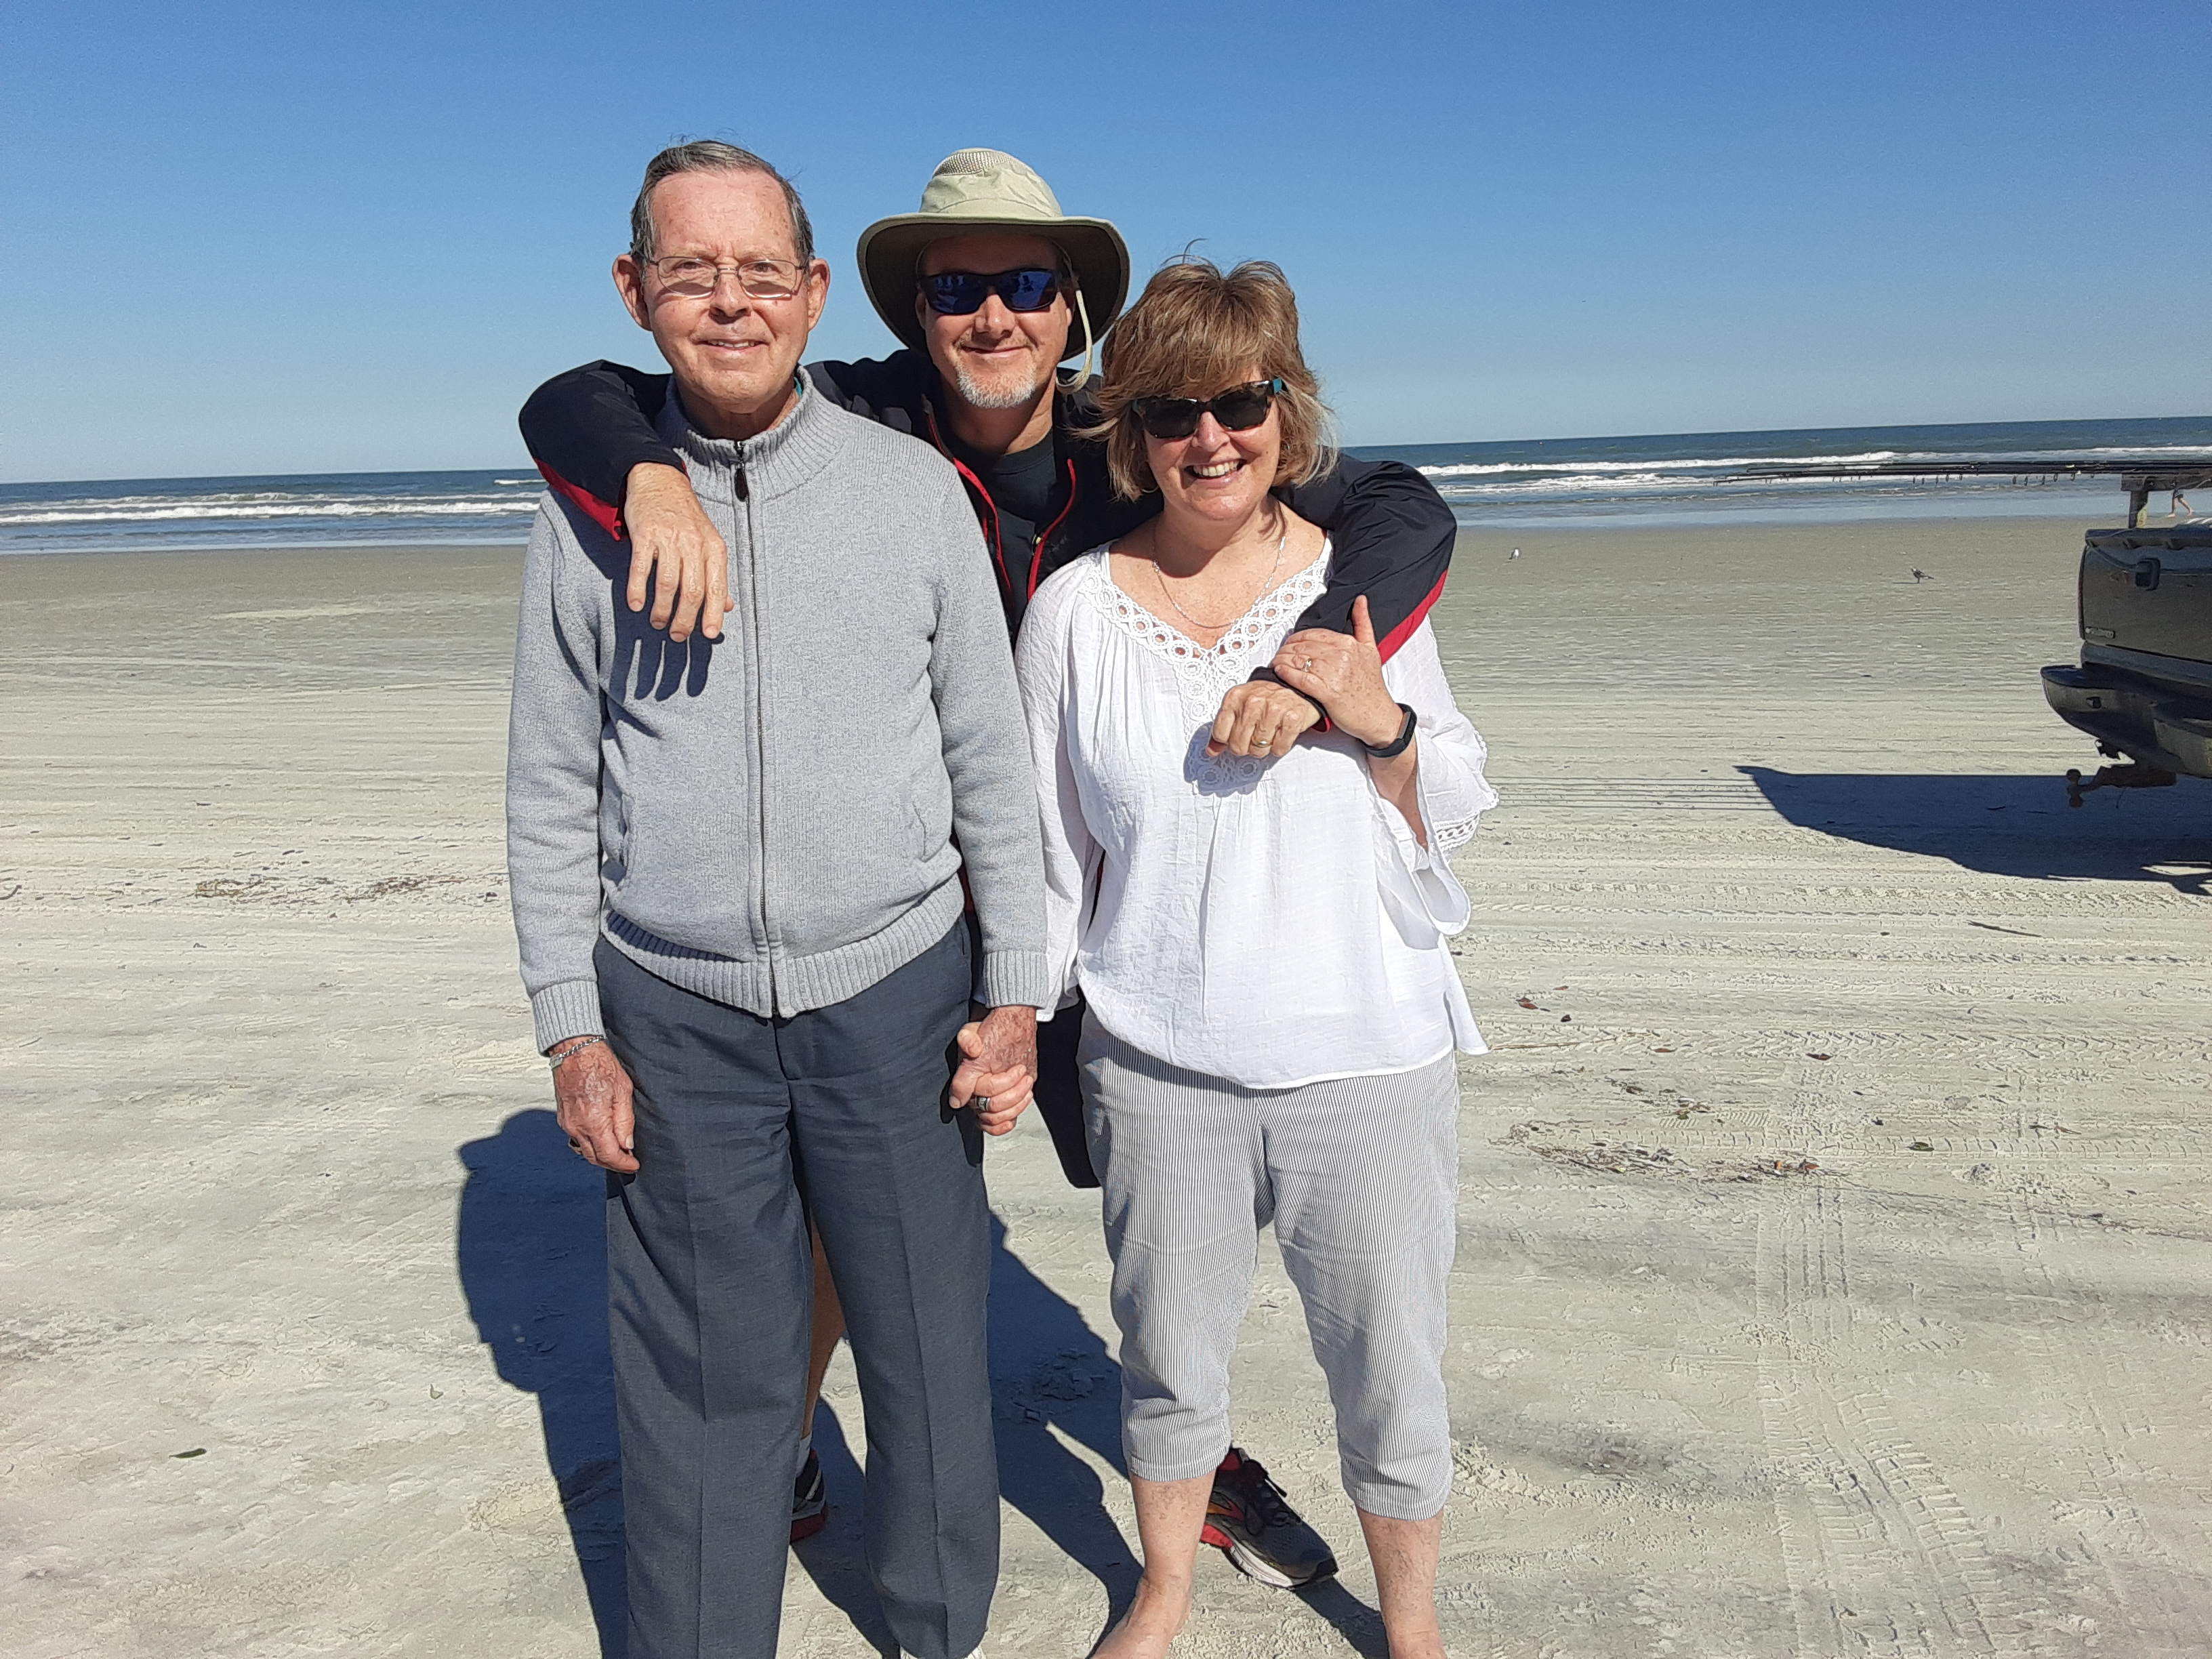 family on beach 20200125_141852